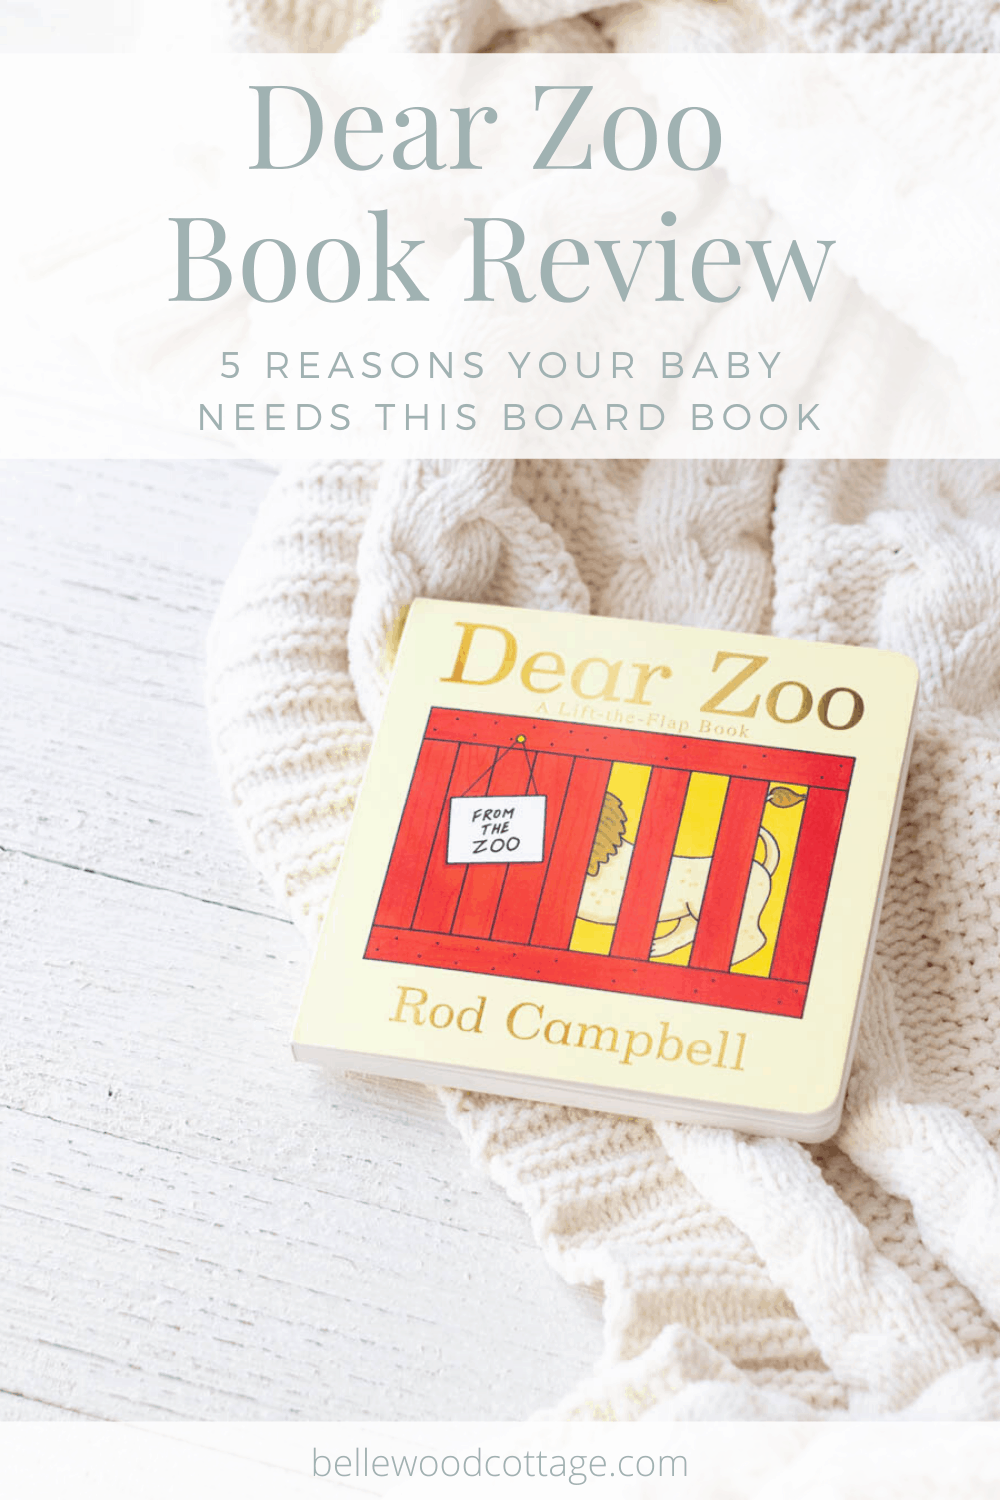 A board book copy of Dear Zoo by Rod Campbell on a wooden surface.